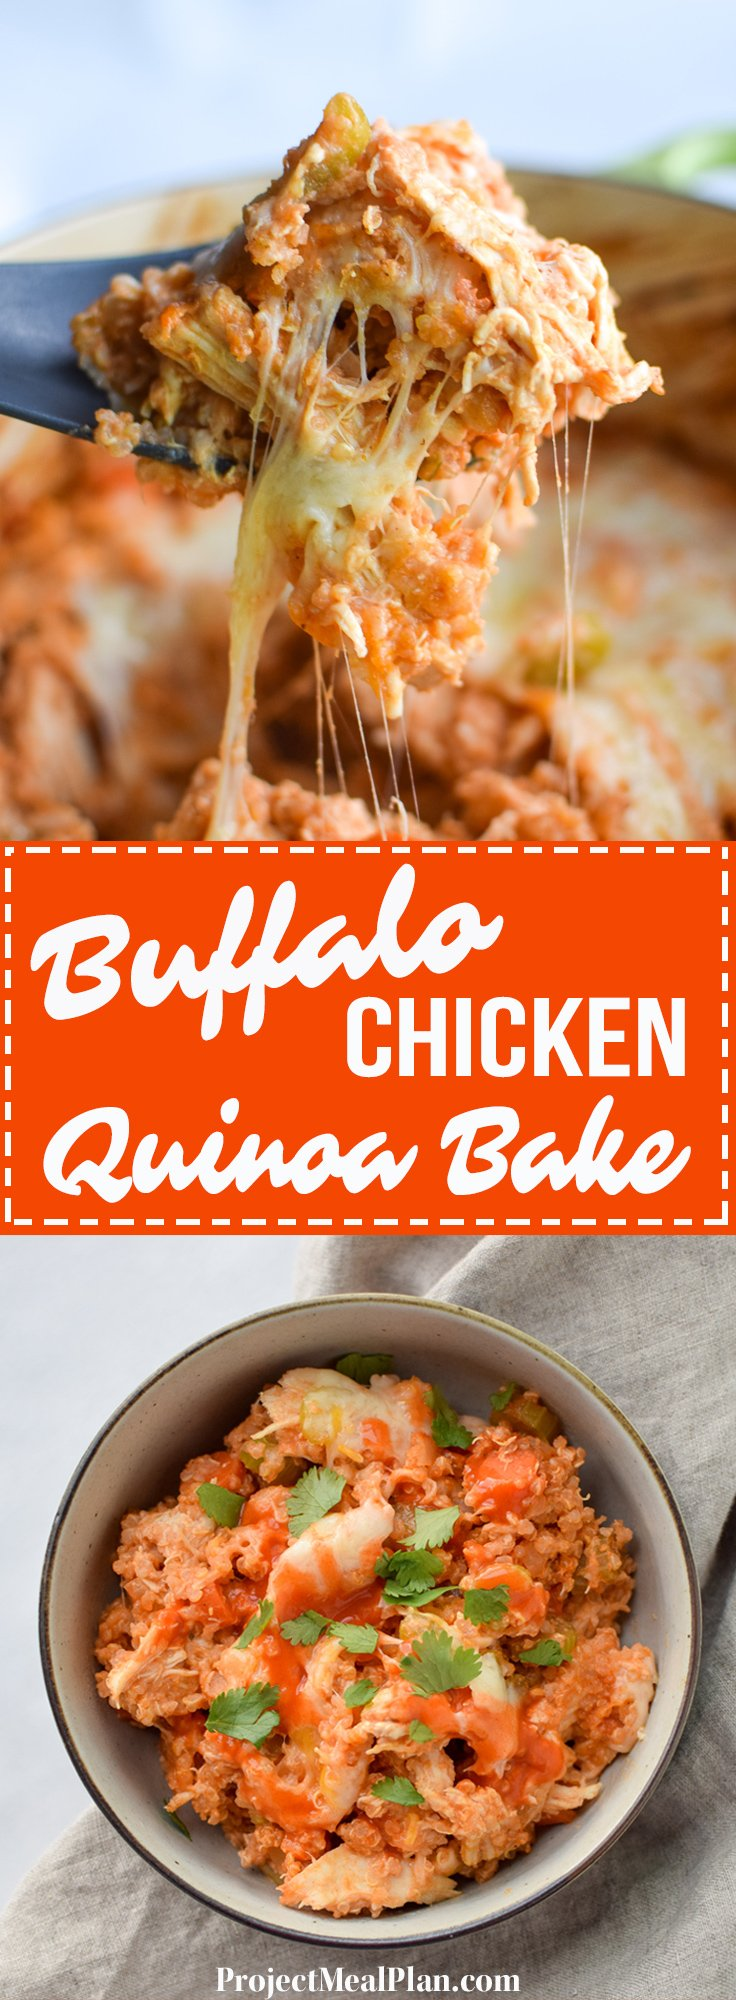 Buffalo Chicken Quinoa Bake recipe - All the best flavors of buffalo chicken, baked to perfection with veggies and quinoa! - ProjectMealPlan.com